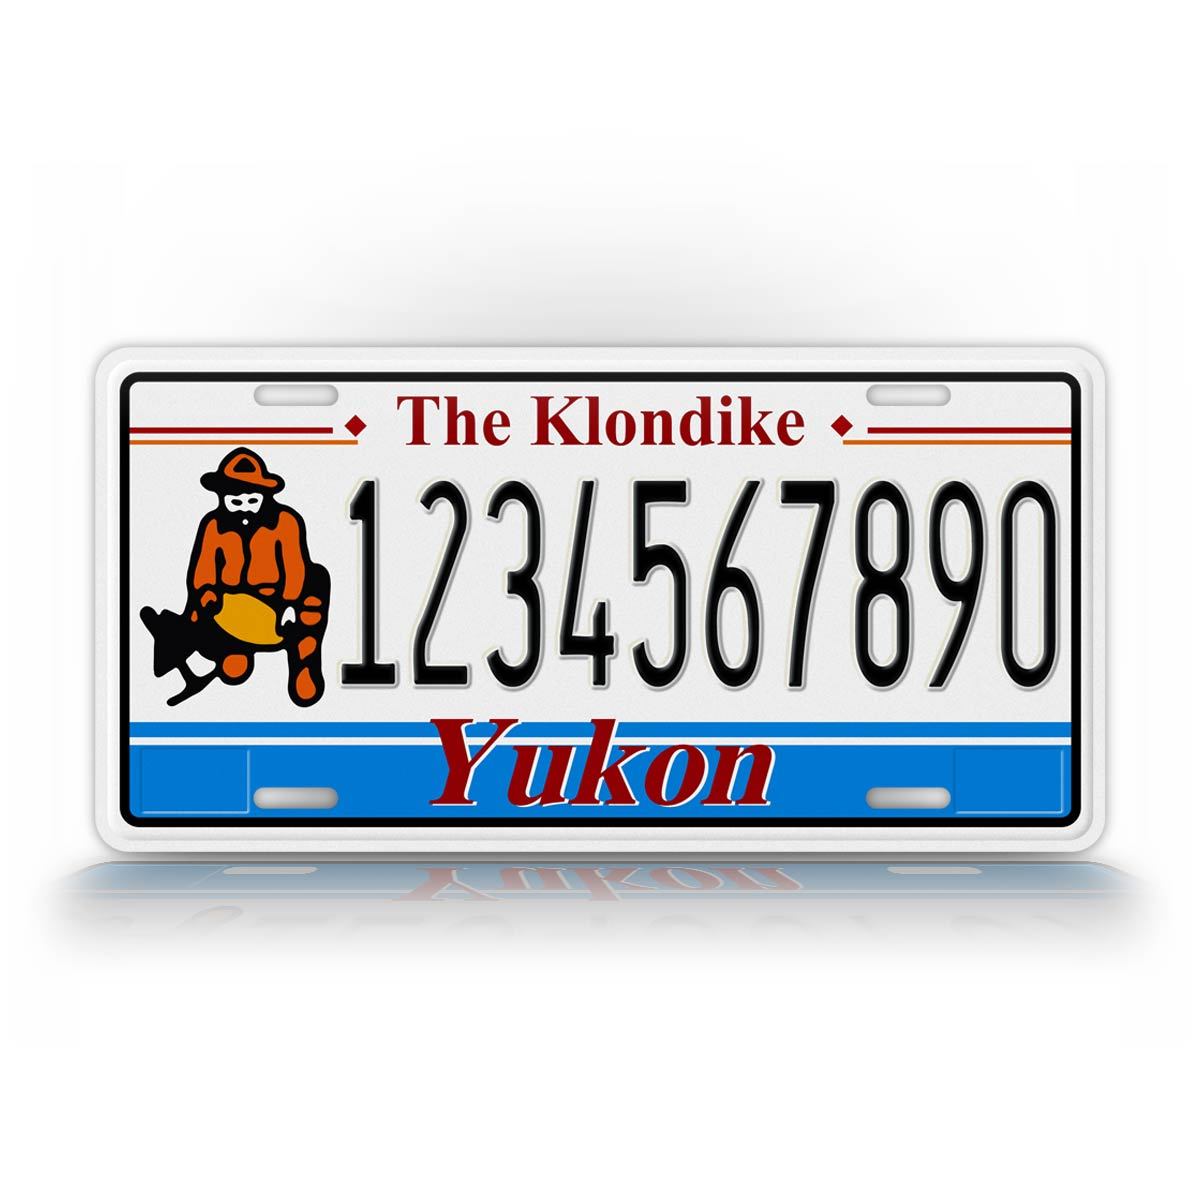 Personalized Text Yukon Canada The Klondike License Plate